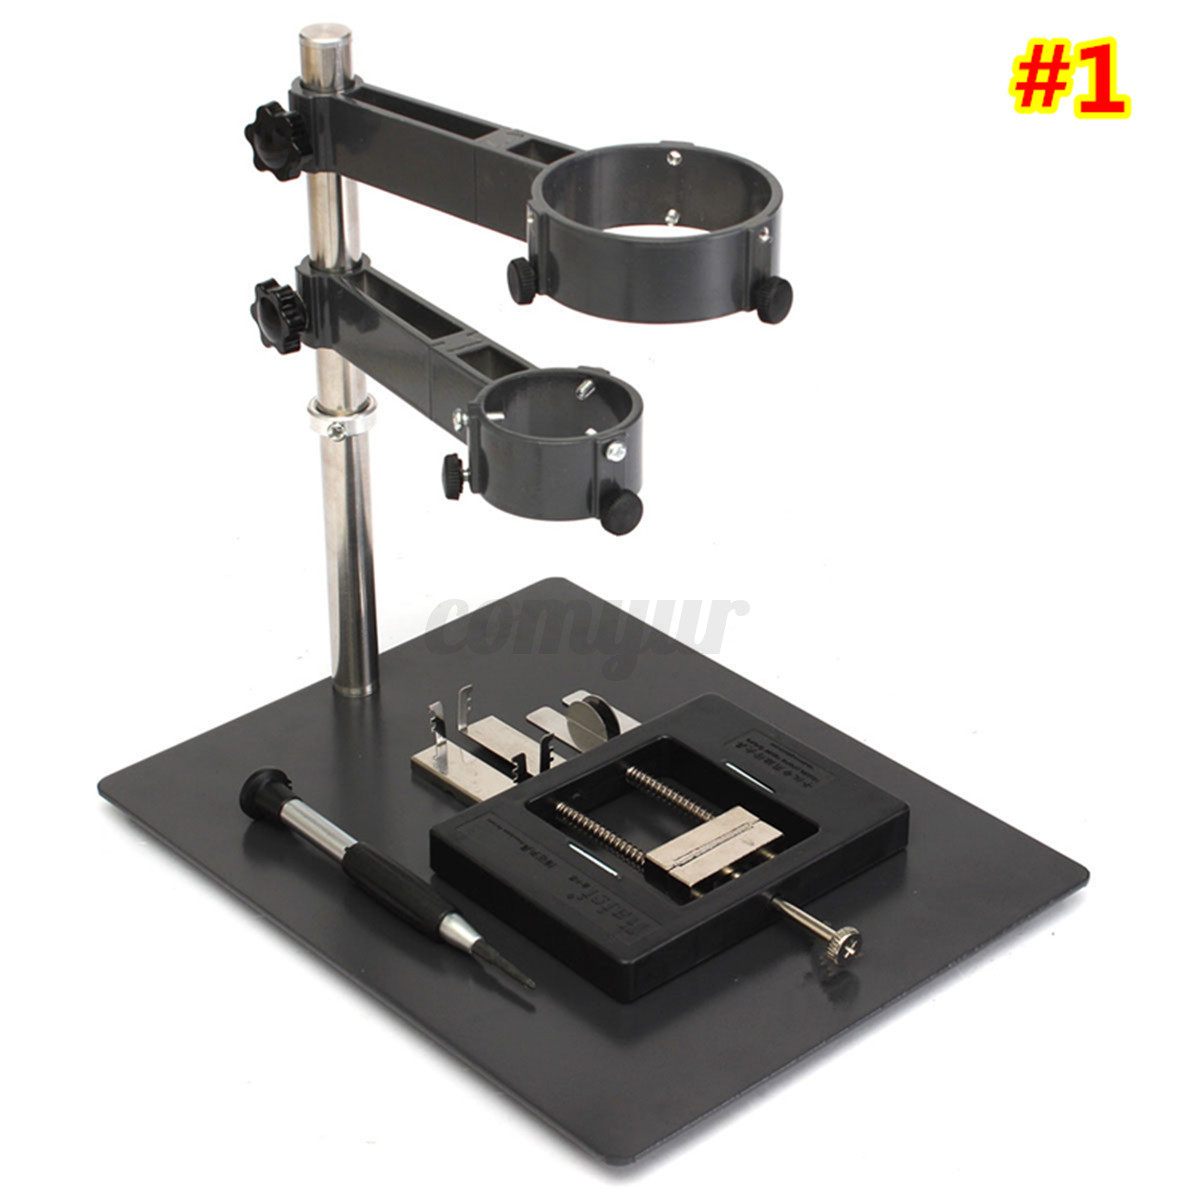 hot air heat gun clamp bracket holder soldering platform station repair tool ebay. Black Bedroom Furniture Sets. Home Design Ideas